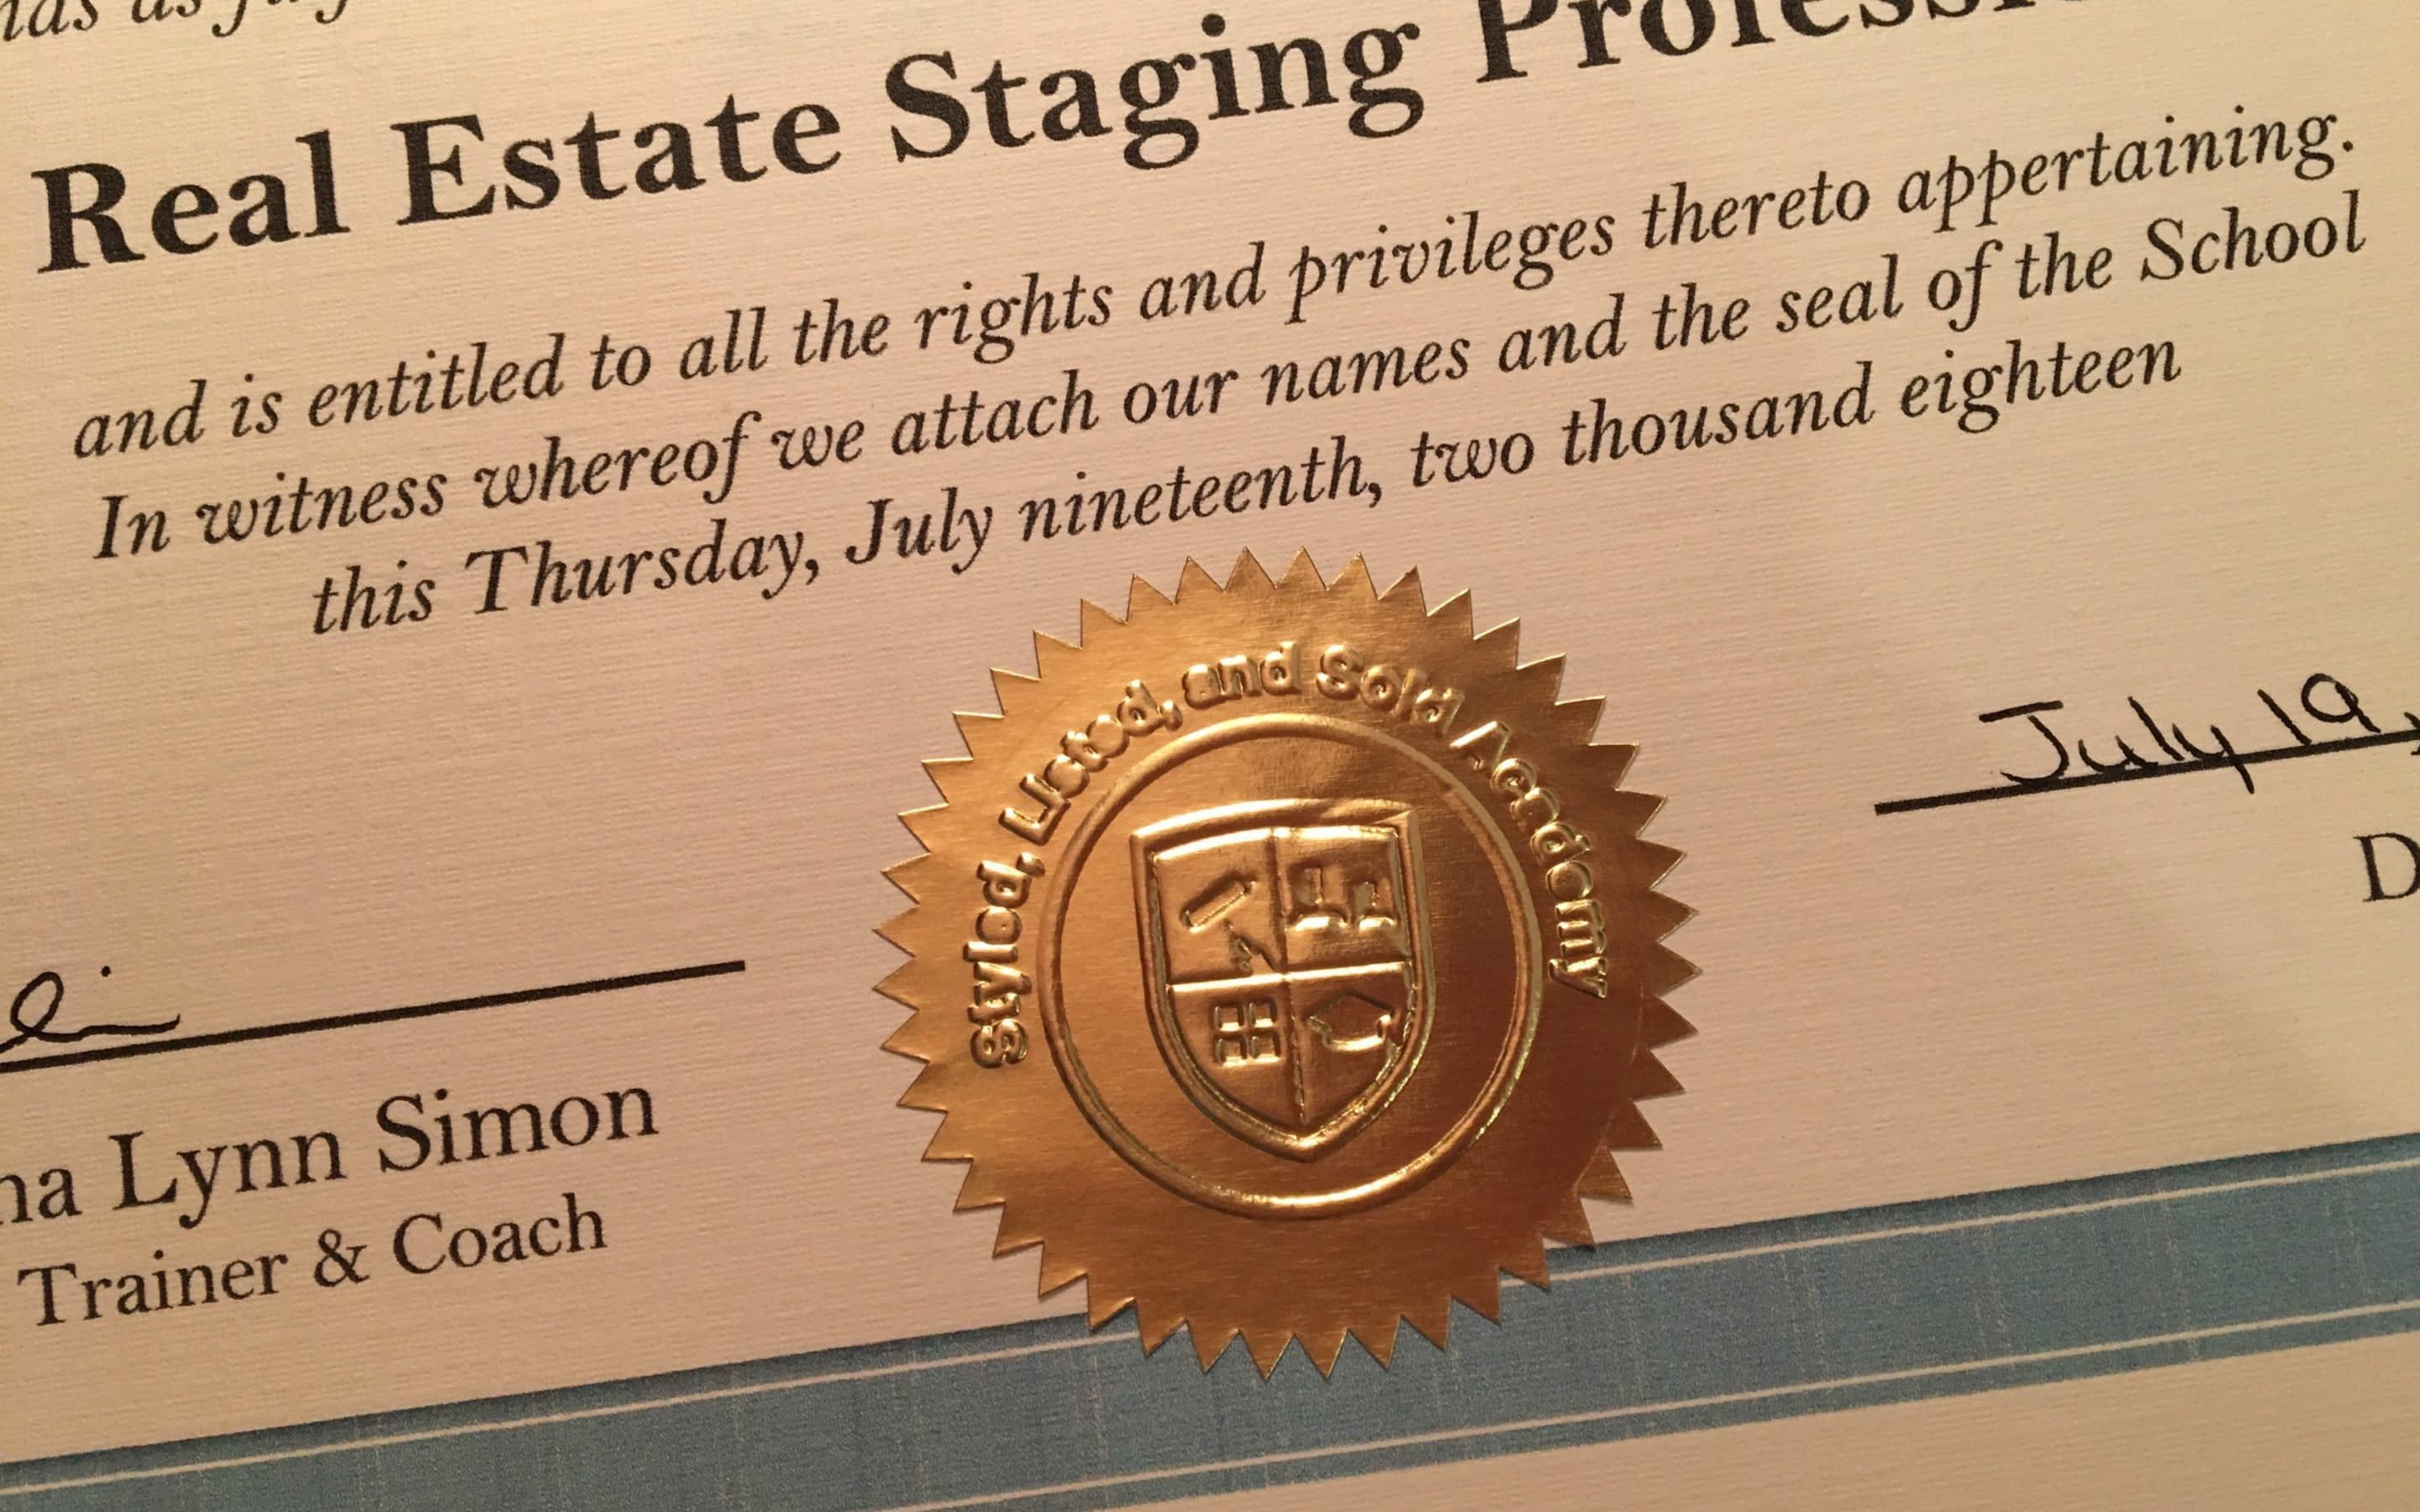 Home Staging Certification – What is it, and Do I Need it?